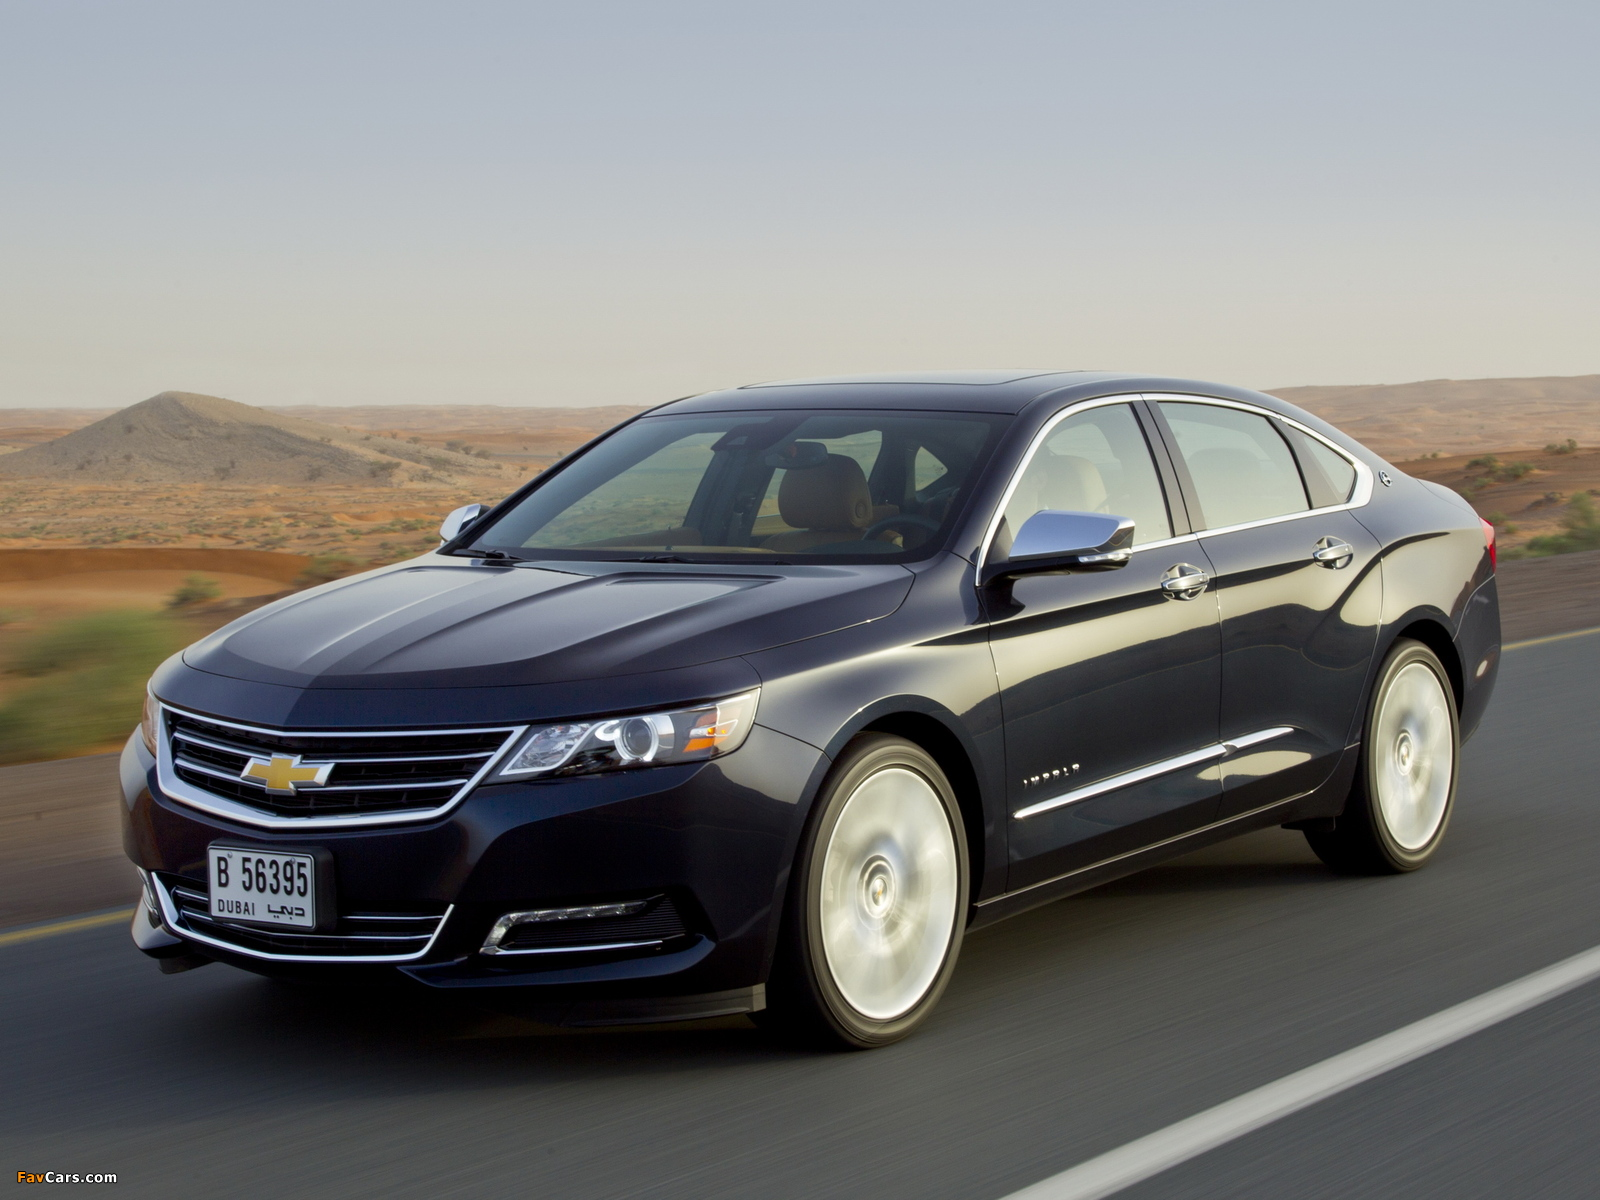 us chevrolet impala 2013 chevrolet impala 2013 chevrolet impala 2013 2016. Cars Review. Best American Auto & Cars Review